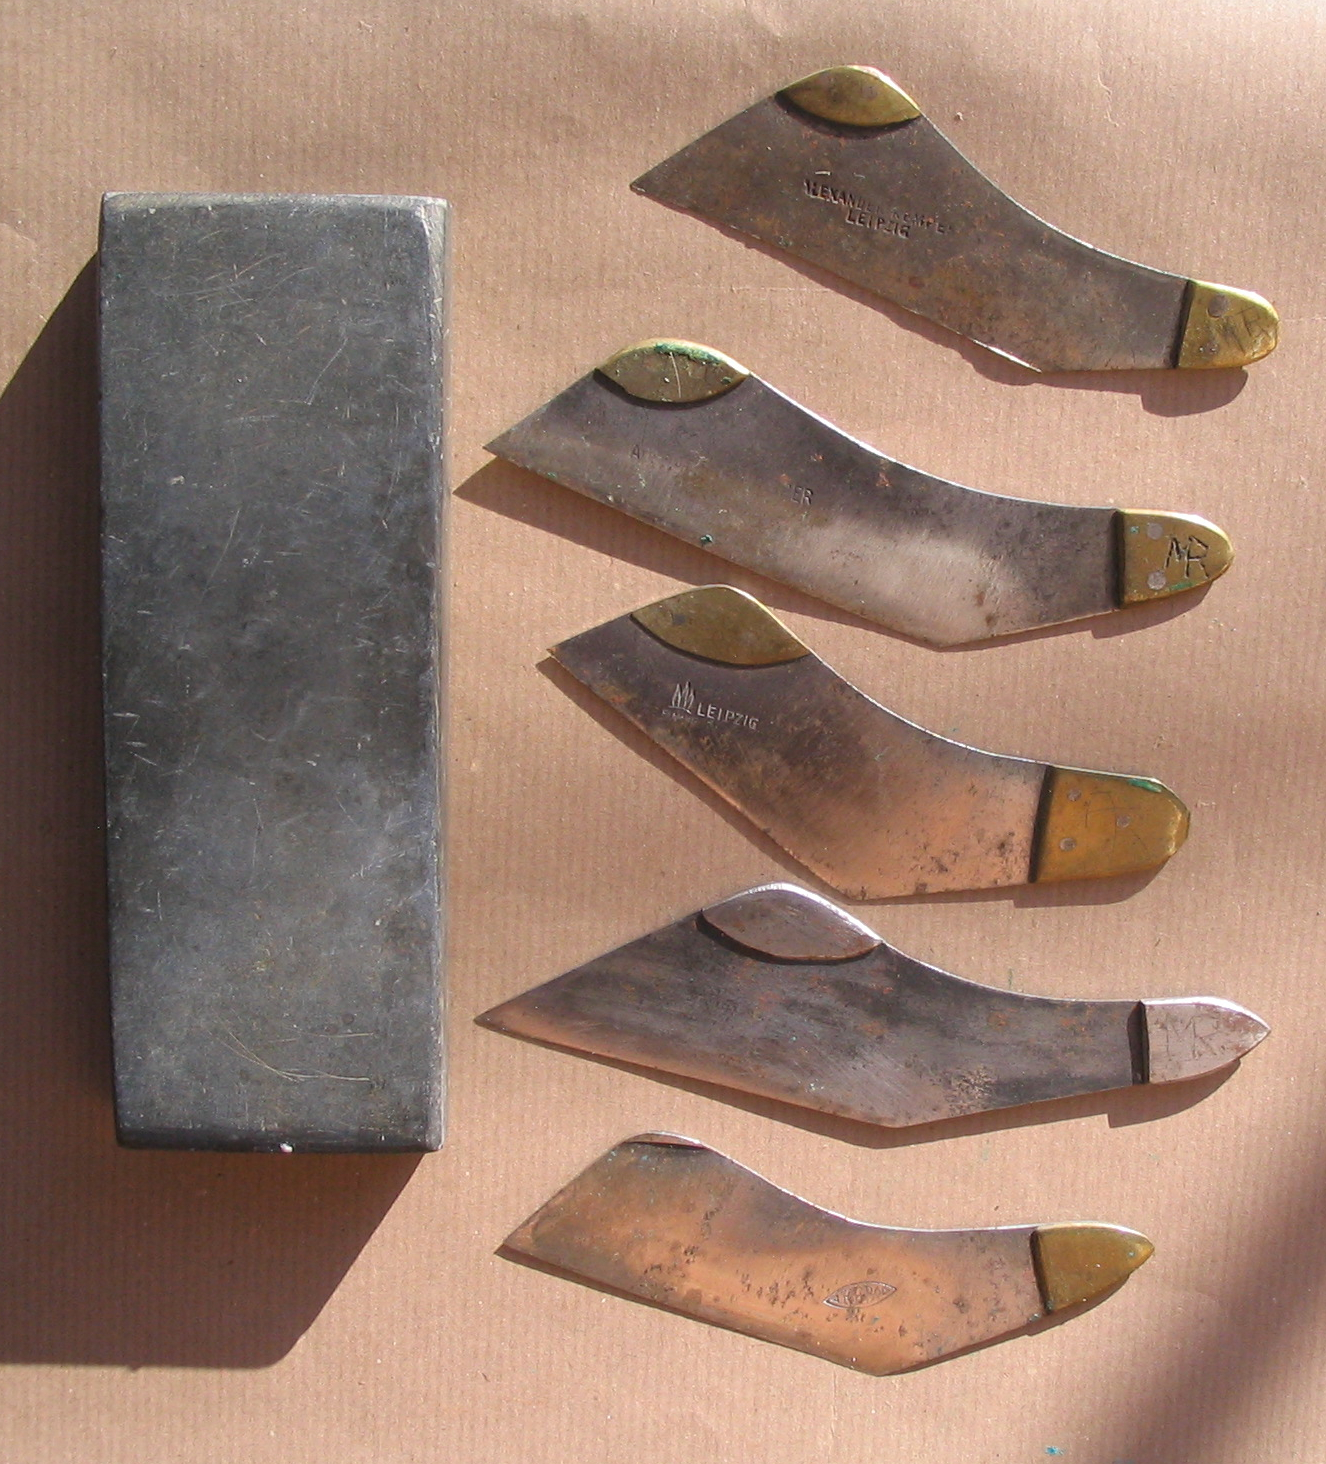 Furriers_knifes%2C_different_manufacture